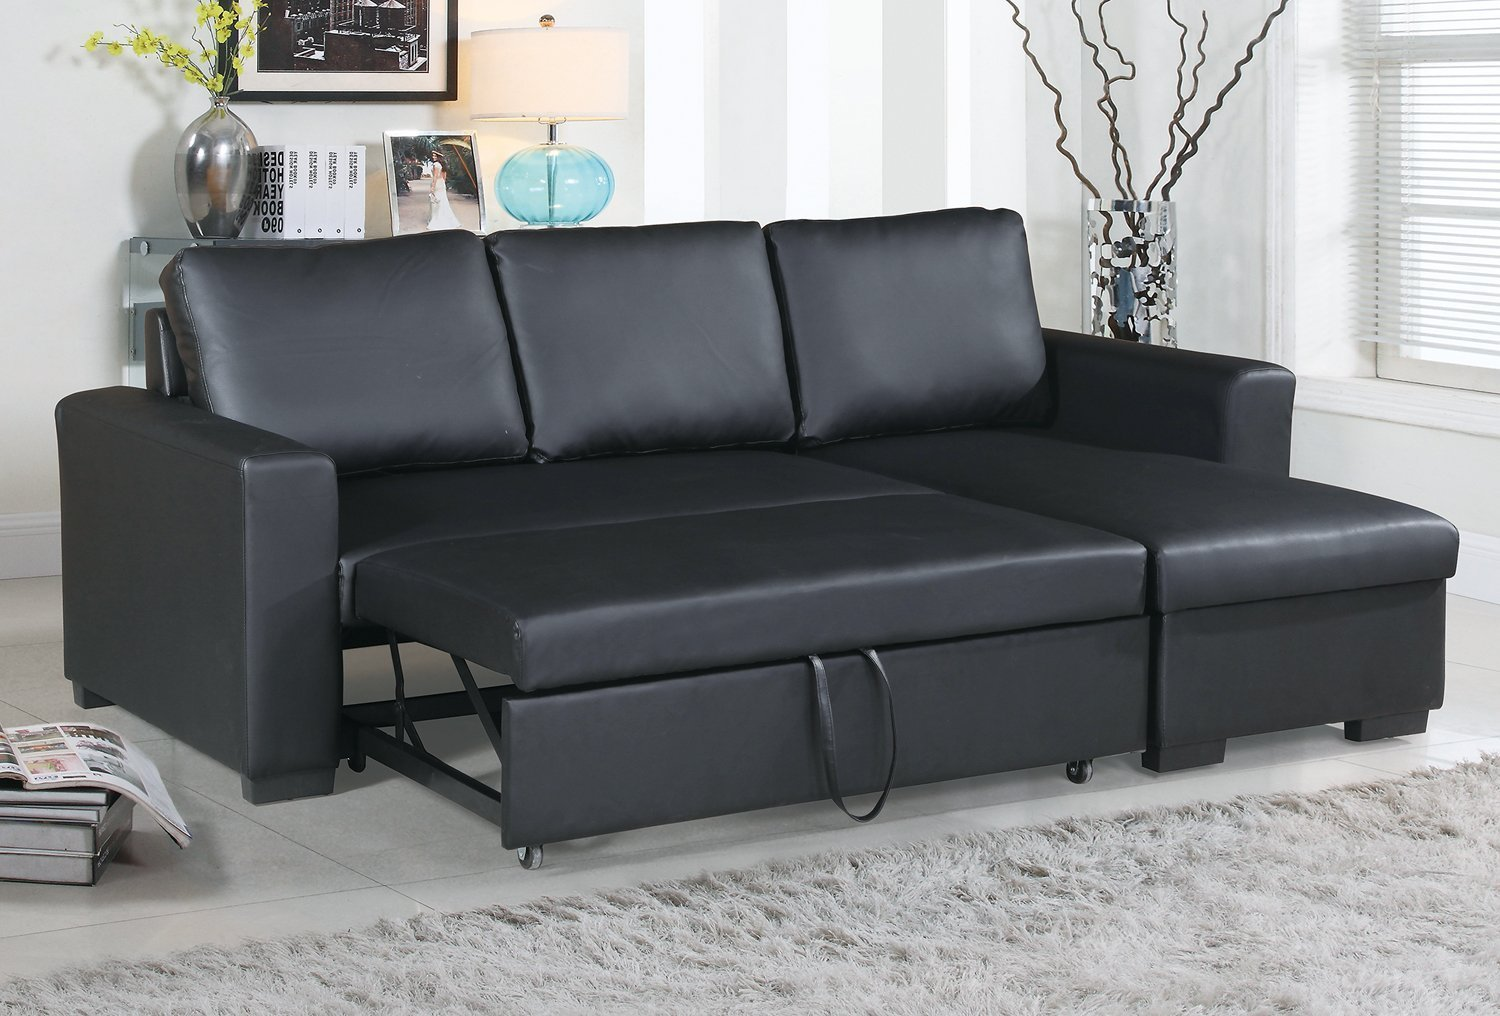 Modern Black Faux Leather Convertible Sectional Sofa Set With Pull Out Bed  ?   Walmart.com